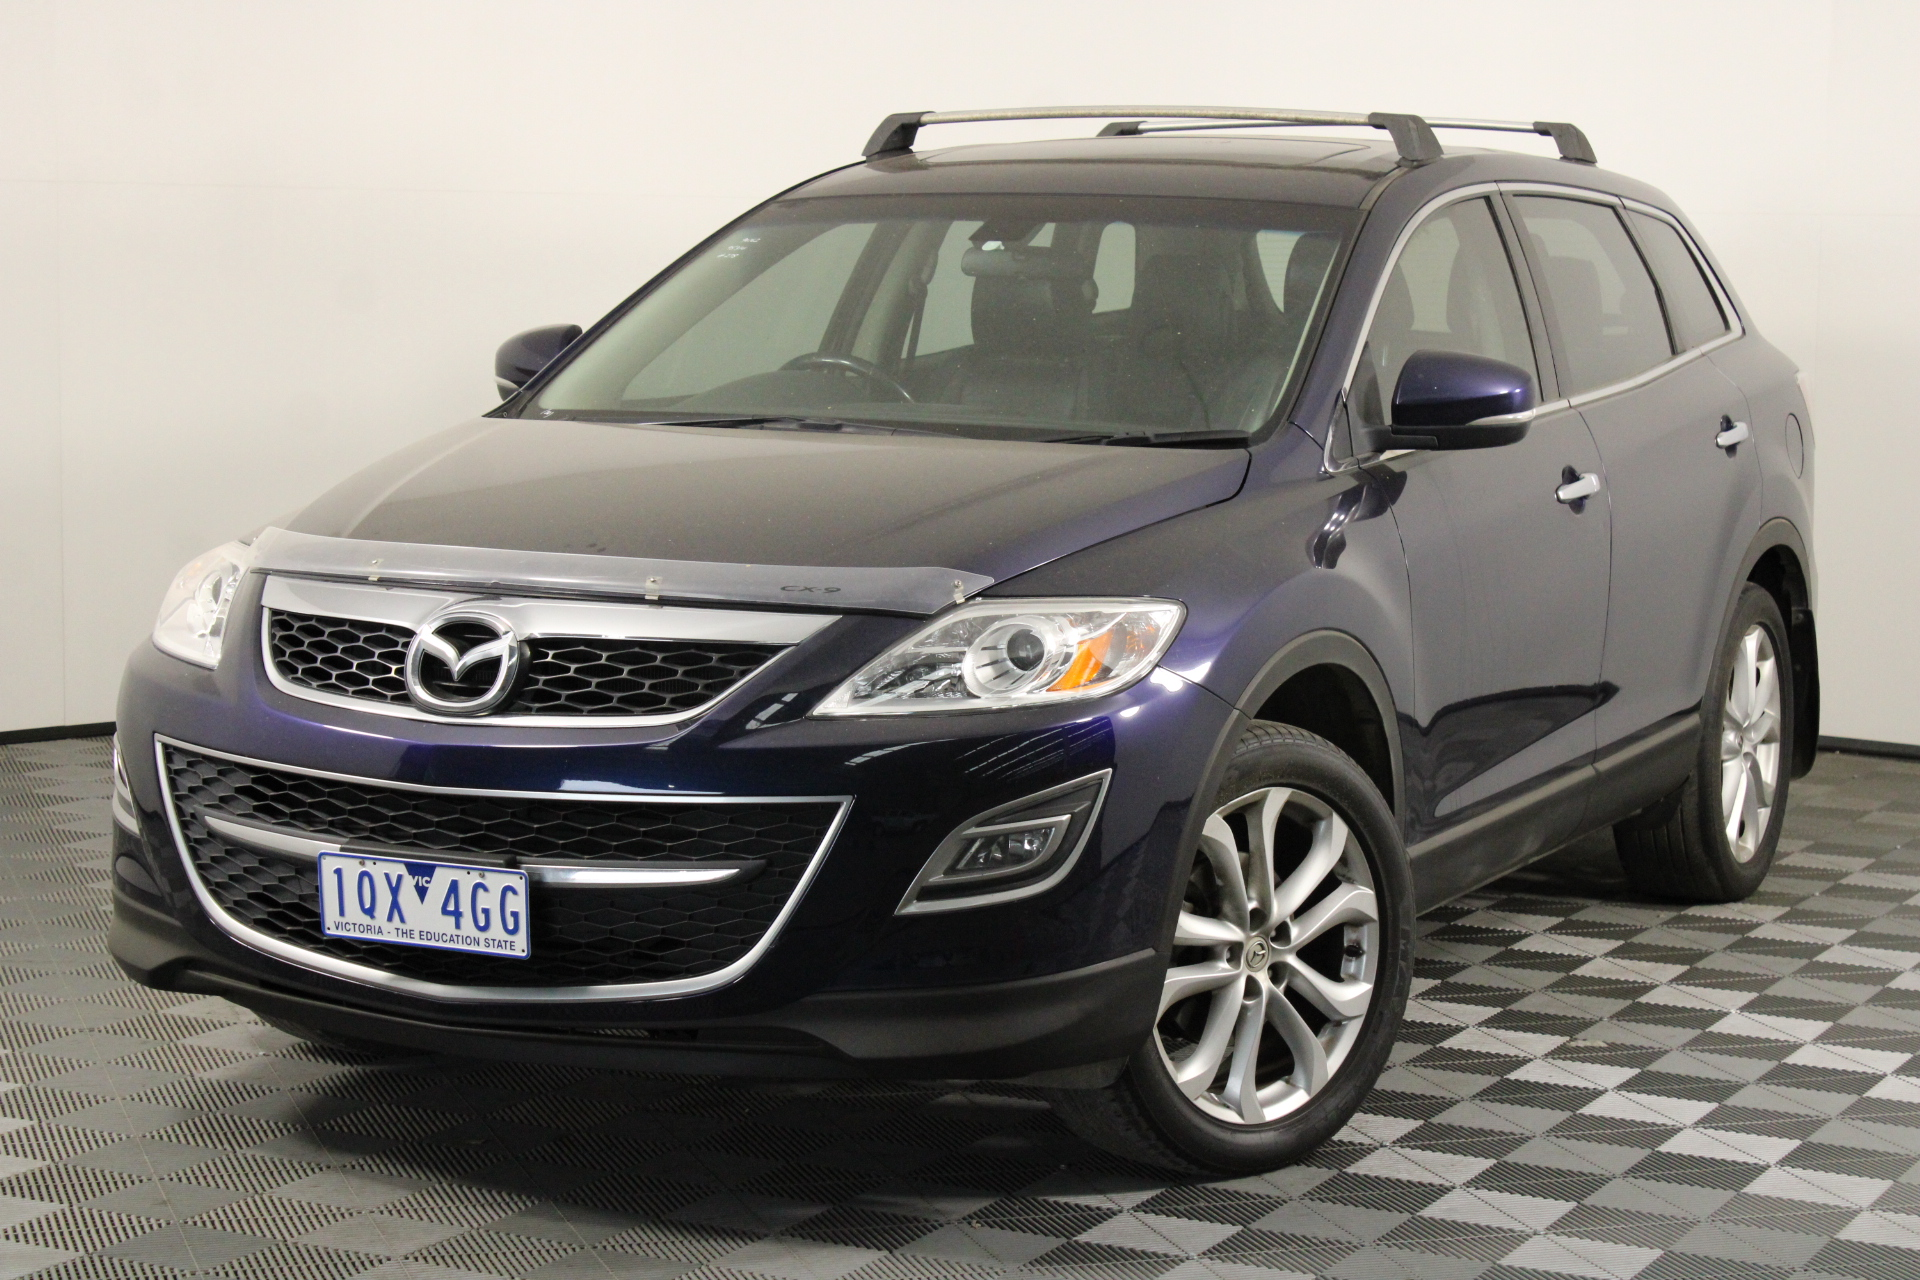 2011 Mazda CX-9 Luxury (FWD) Automatic 7 Seats Wagon